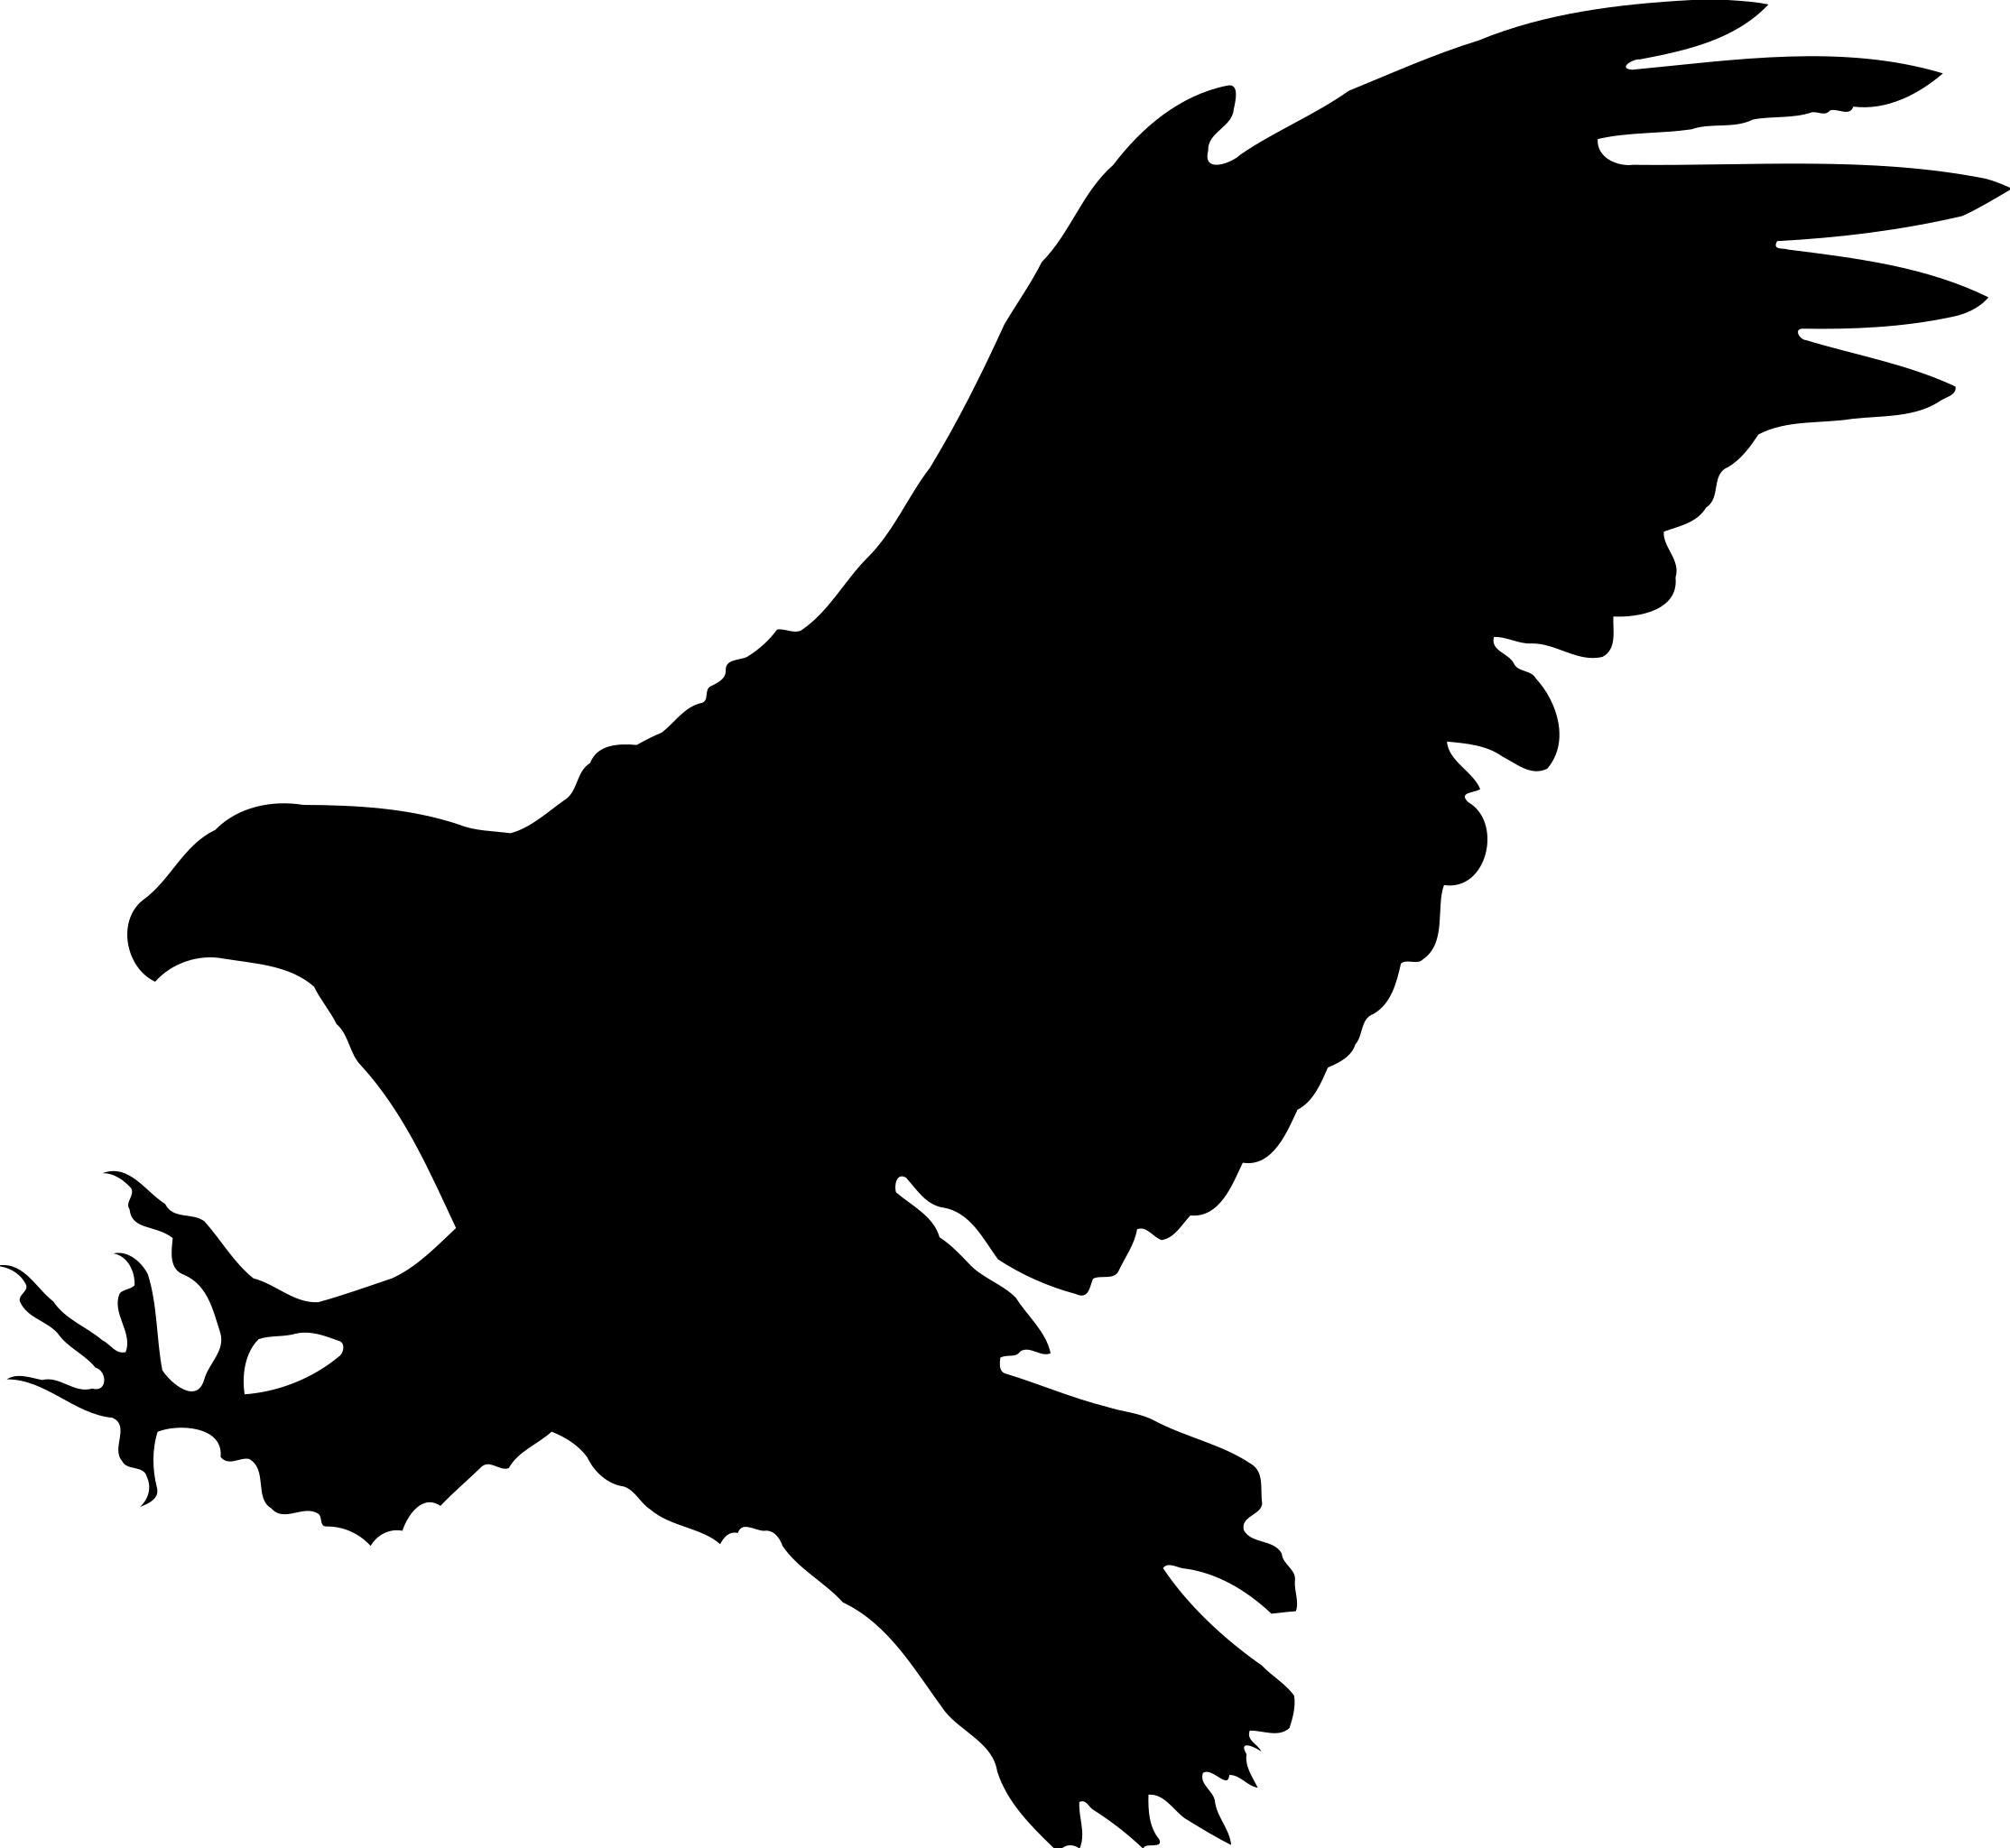 Eagle silhouette PNG Photos.